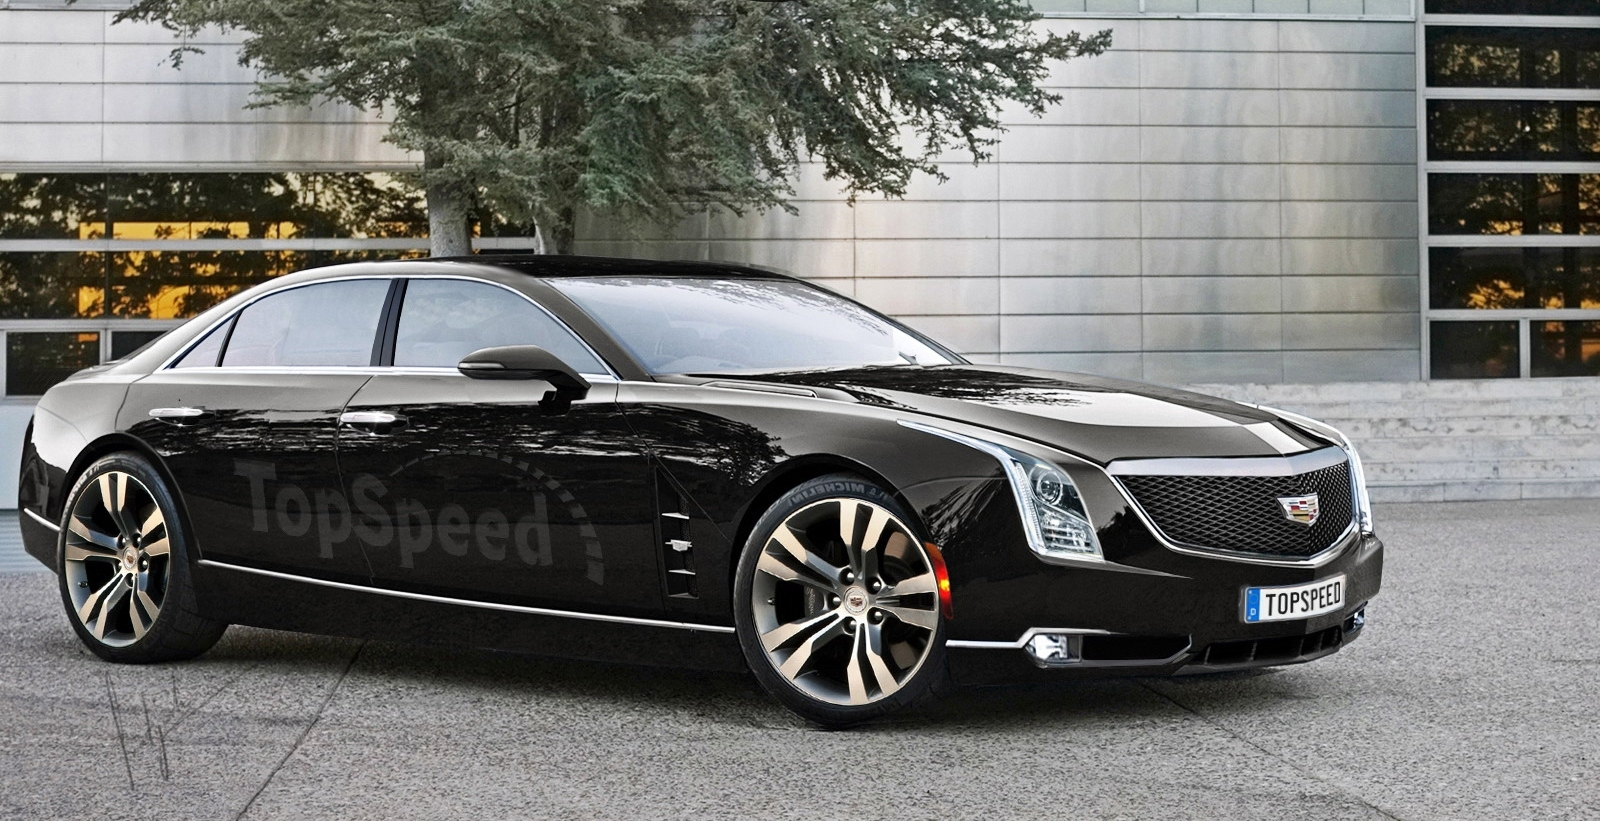 Cadillac Trademarks 13 New Names | Top Speed